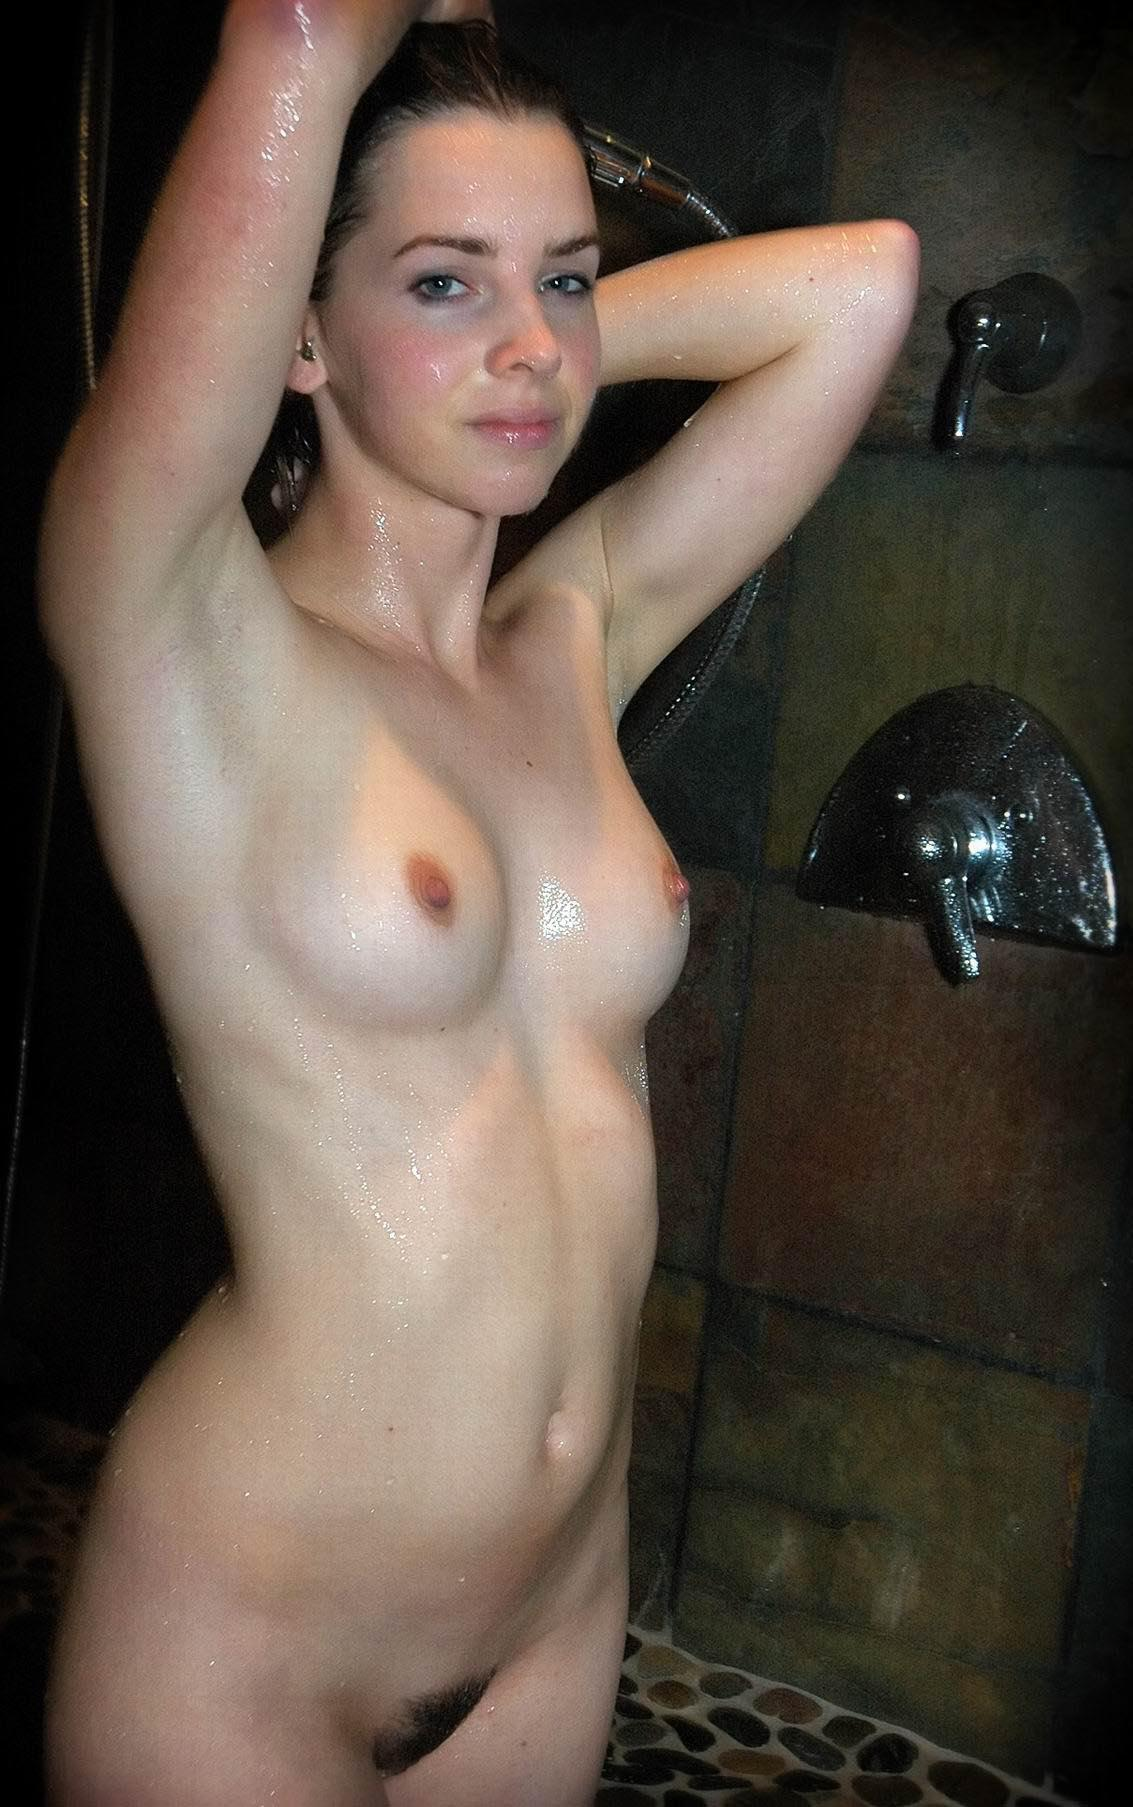 naked amateur women in the shower